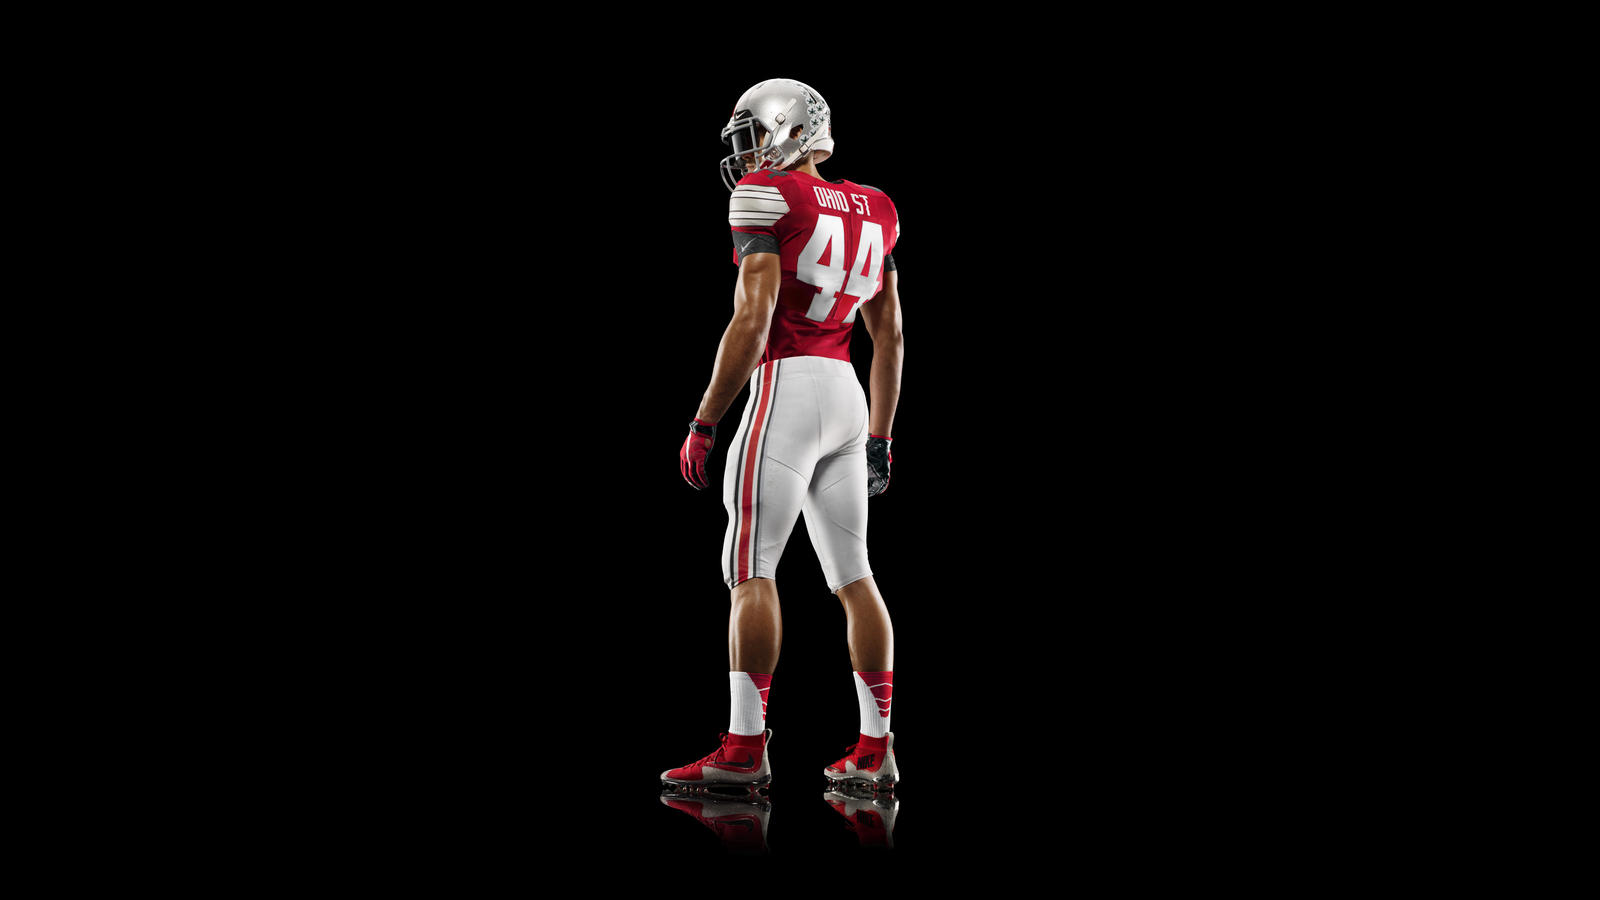 Photos  Ohio State s 1968 inspired alternate uniforms for 2014 Sugar Bowl 0c28c7044